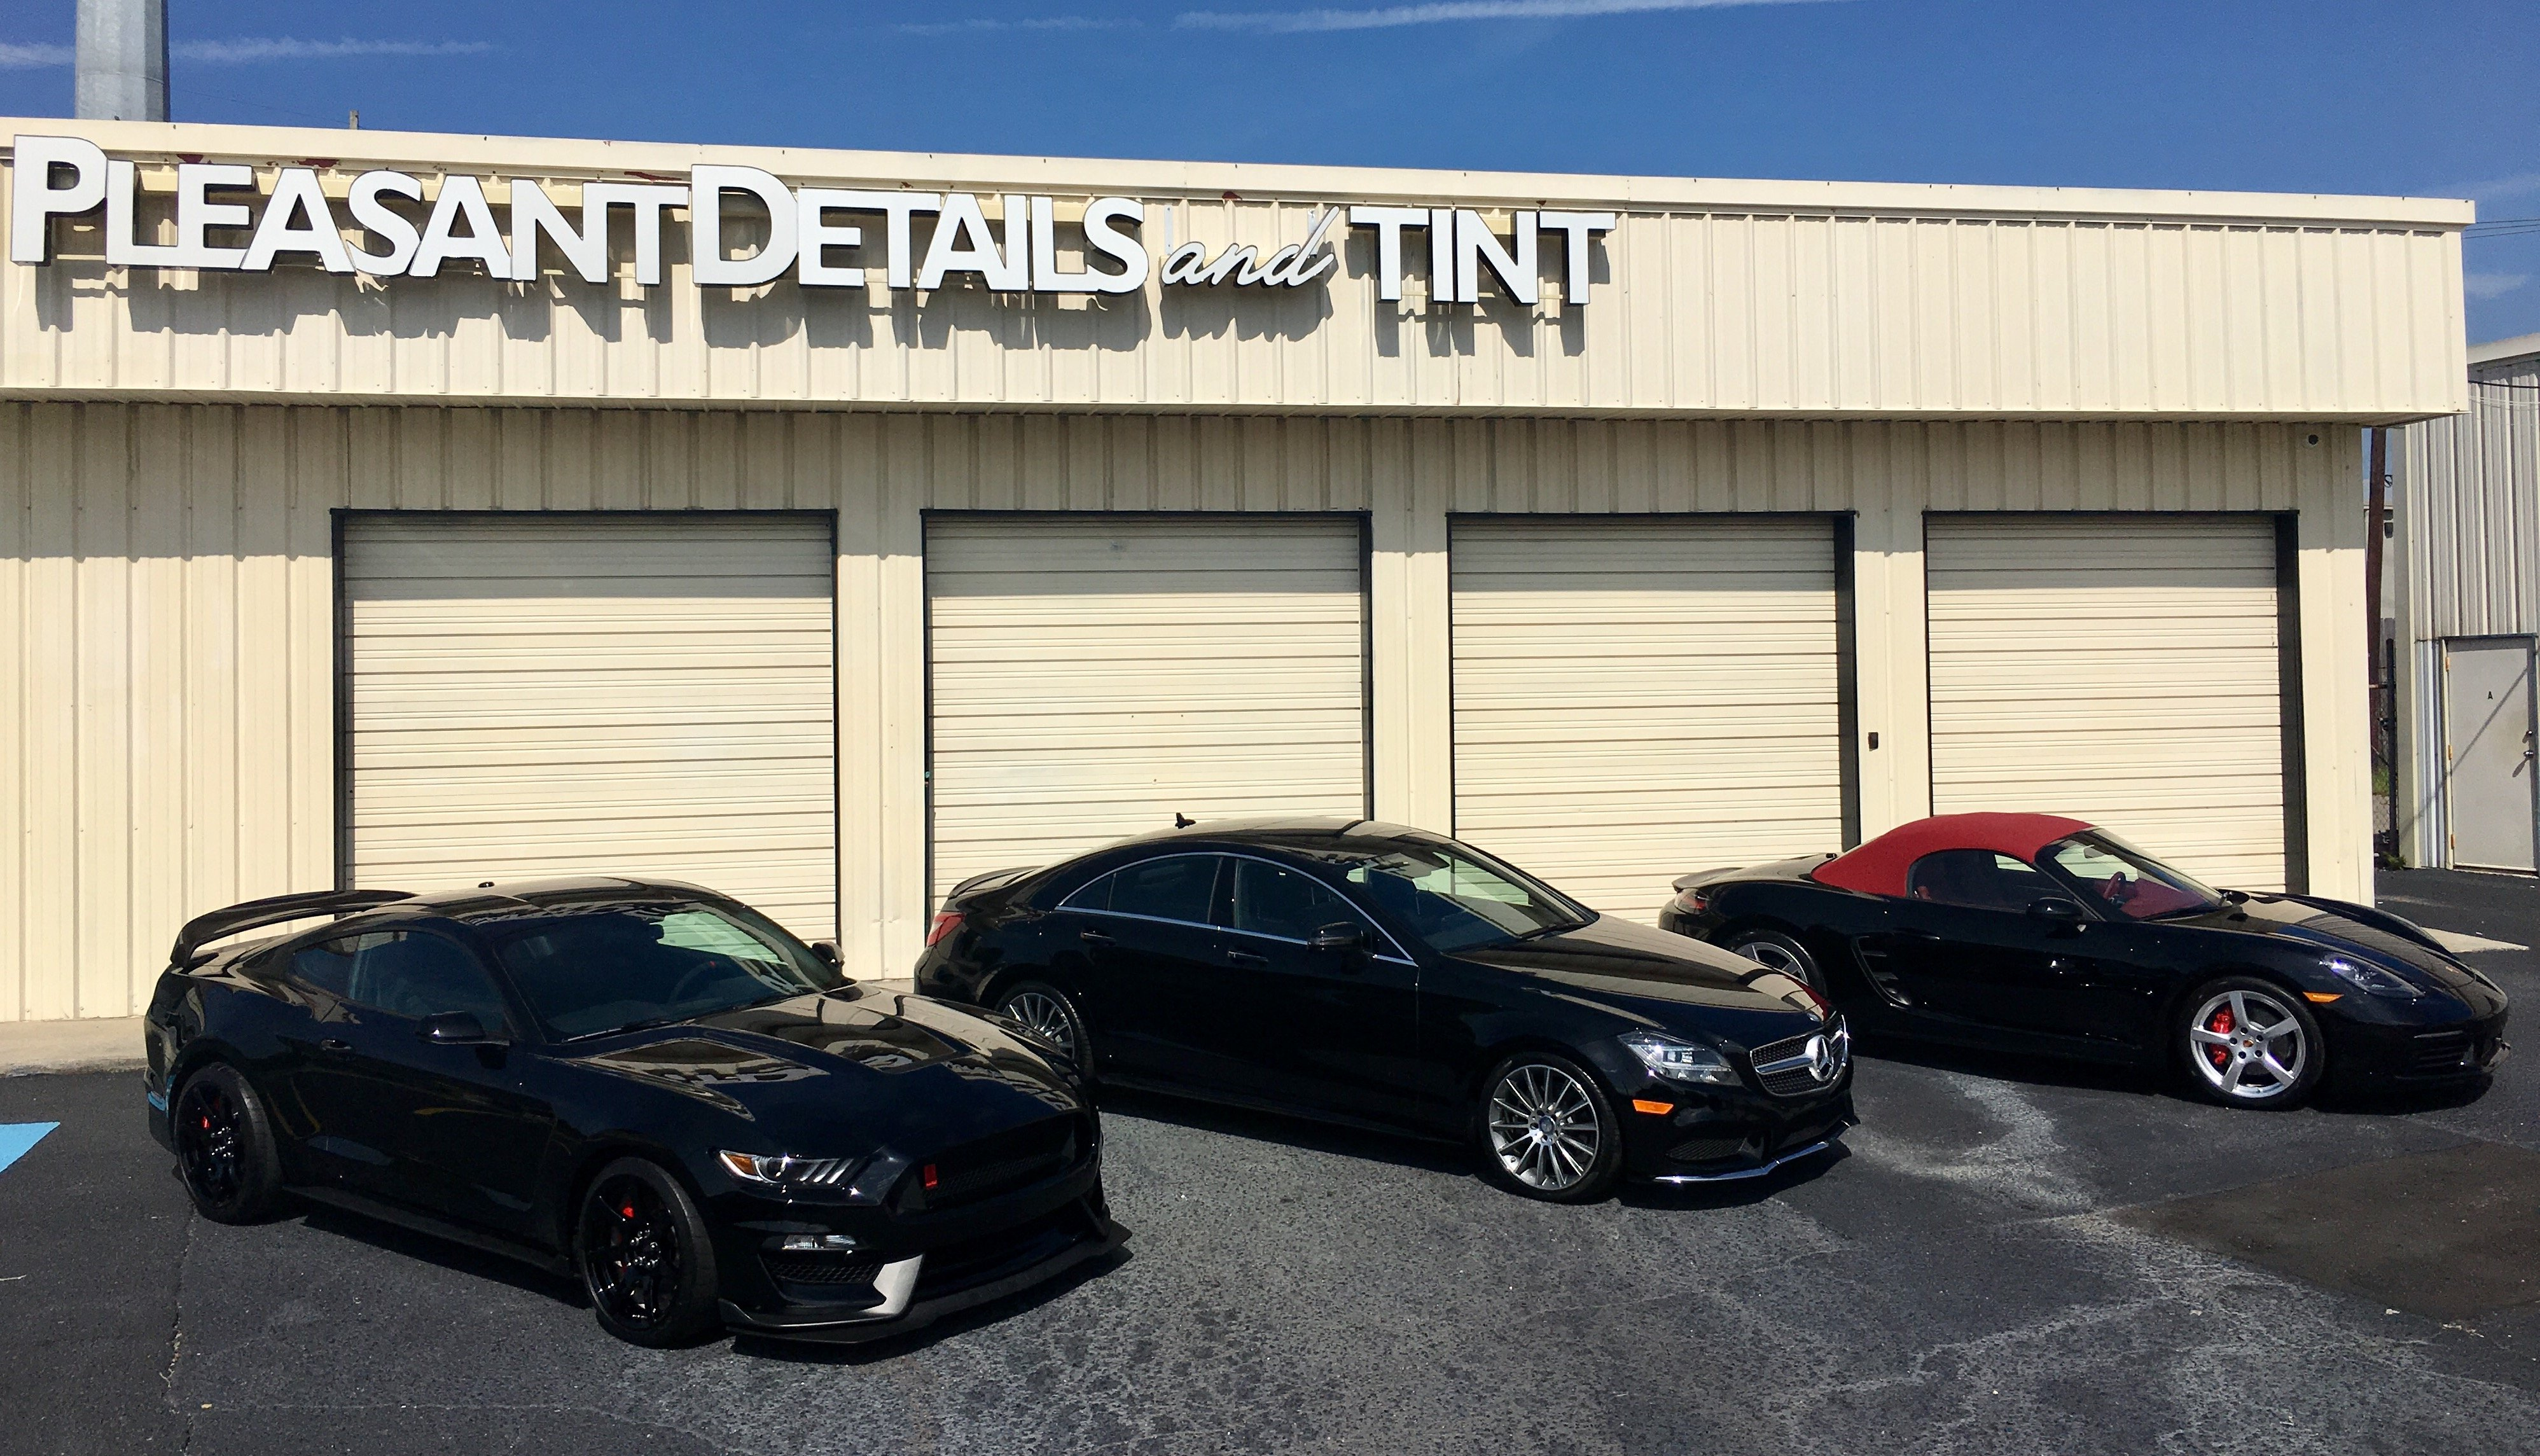 Come visit Pleasant Details and Tint's new location!